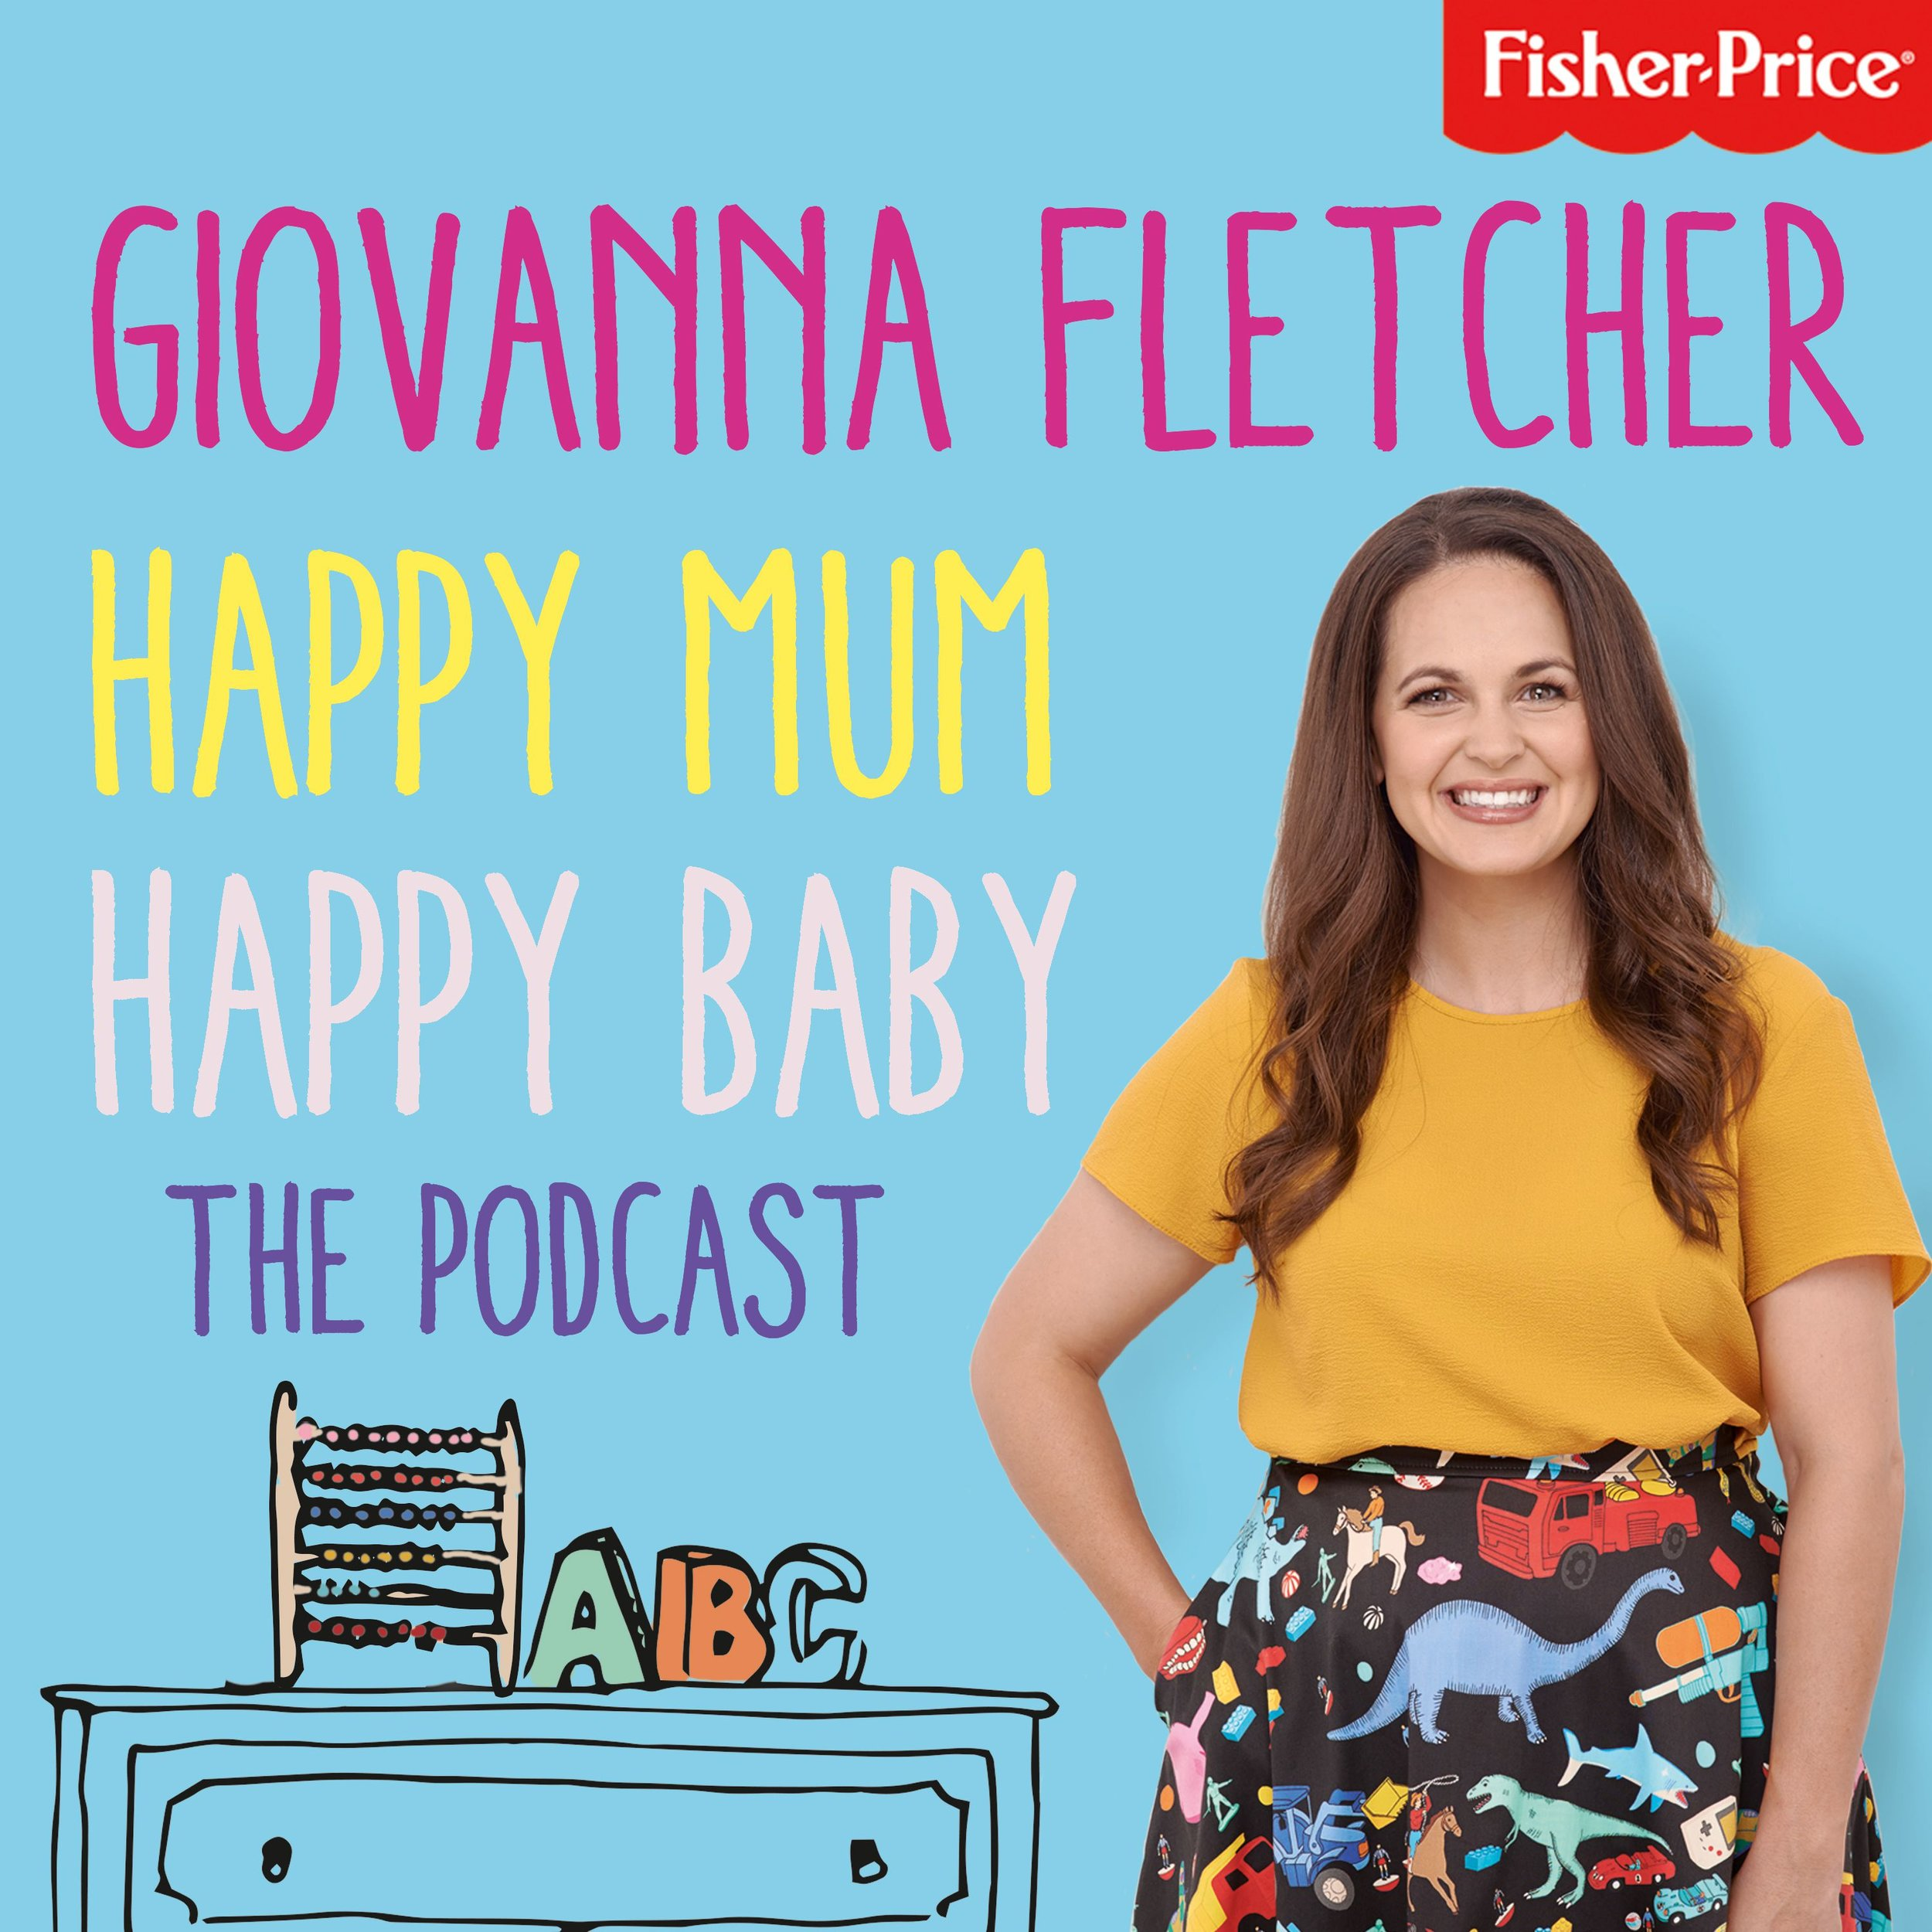 happy mum happy baby - I'm not quite sure why I've become so obsessed with this podcast as I'm not even sure that I'll ever have children. But every week I wait with excitement for the Happy Mum Happy Baby podcast from Giovanna Fletcher. The way that she talks about motherhood is so beautifully honest and it makes the whole thing seem a lot less terrifying which I think is what everyone needs. I'm not afraid to say that I'm absolutely clueless when it comes to children so it's reassuring to hear that even when you have a baby you can still feel that way. I loved the episode that she did with her husband Tom, it was so lovely to hear them talk together as a couple on the topic of parenthood.